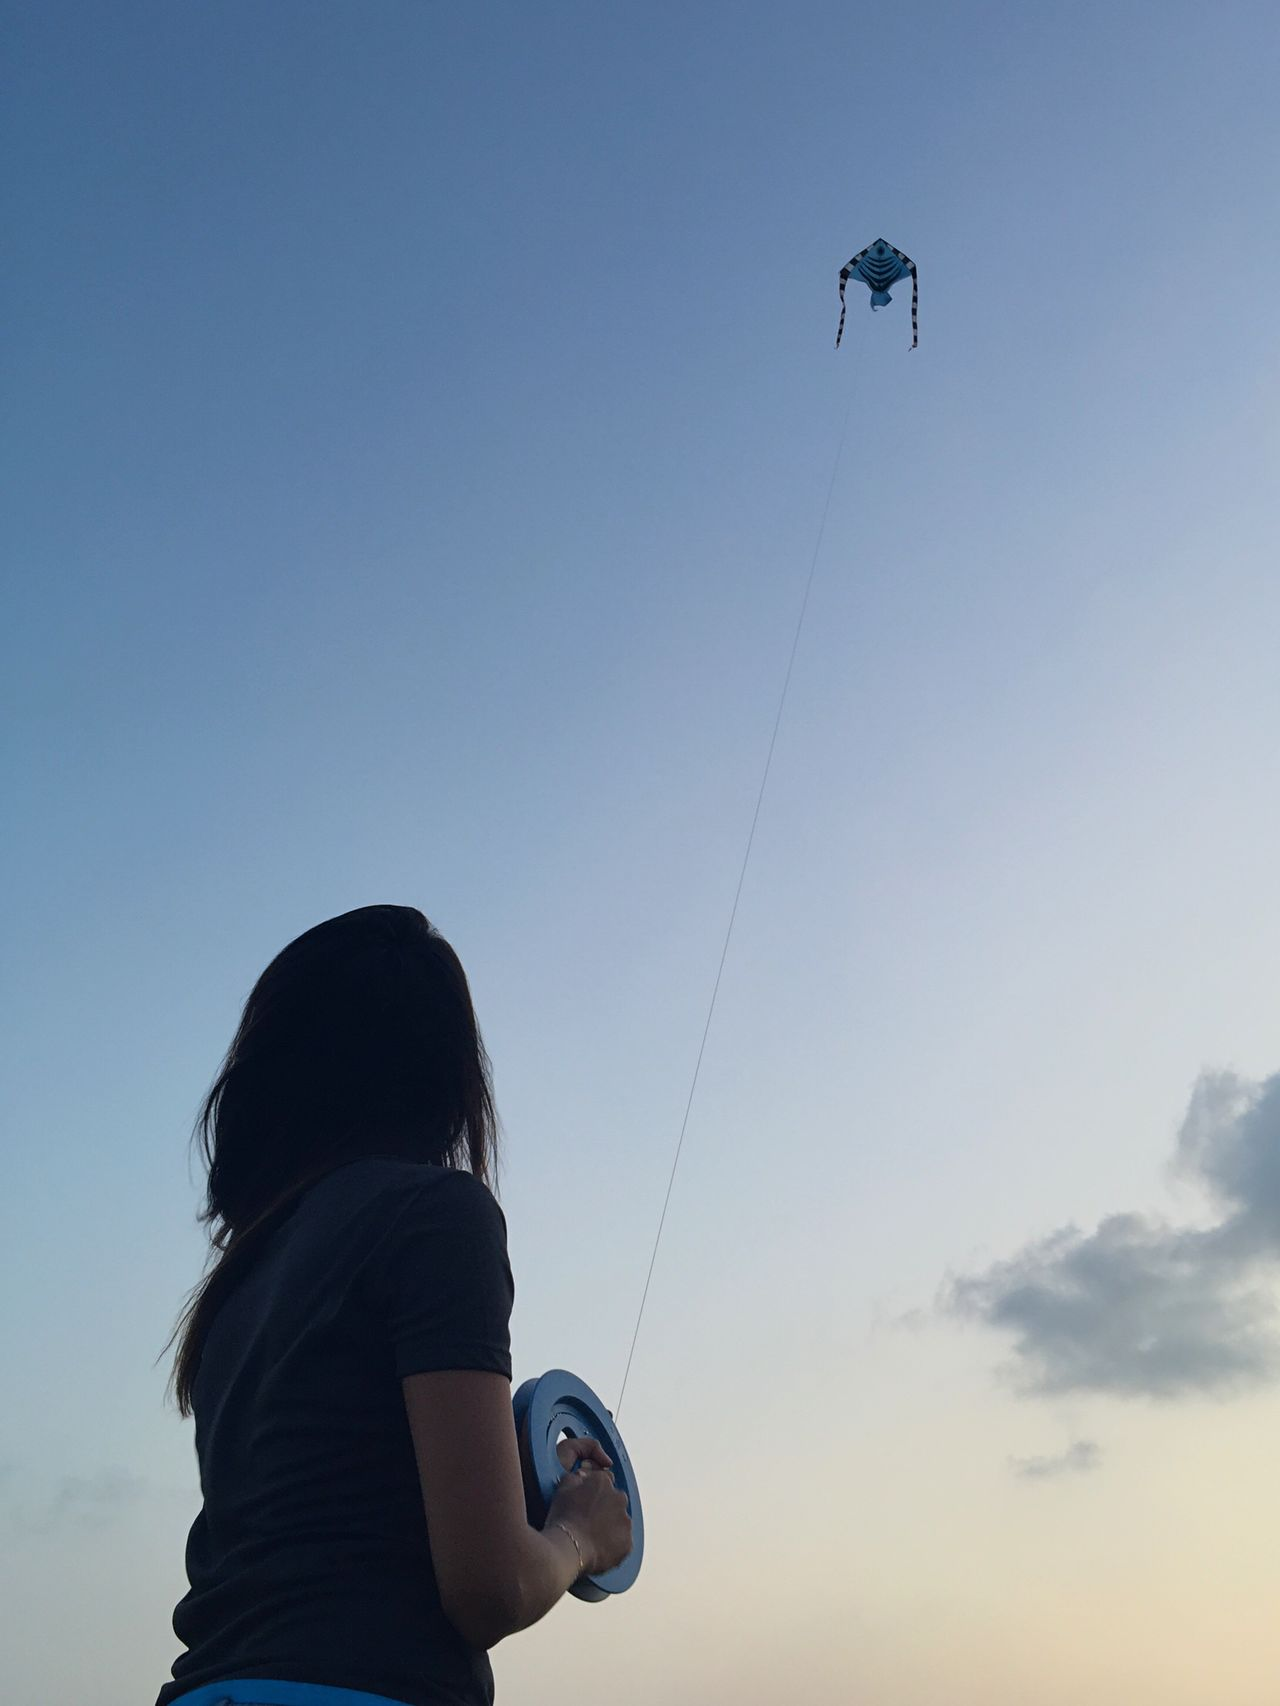 Things I Like Photography In Motion Here Belongs To Me Perspectives Flying A Kite Kite Sky Relaxing Enjoying Life Street Photography People